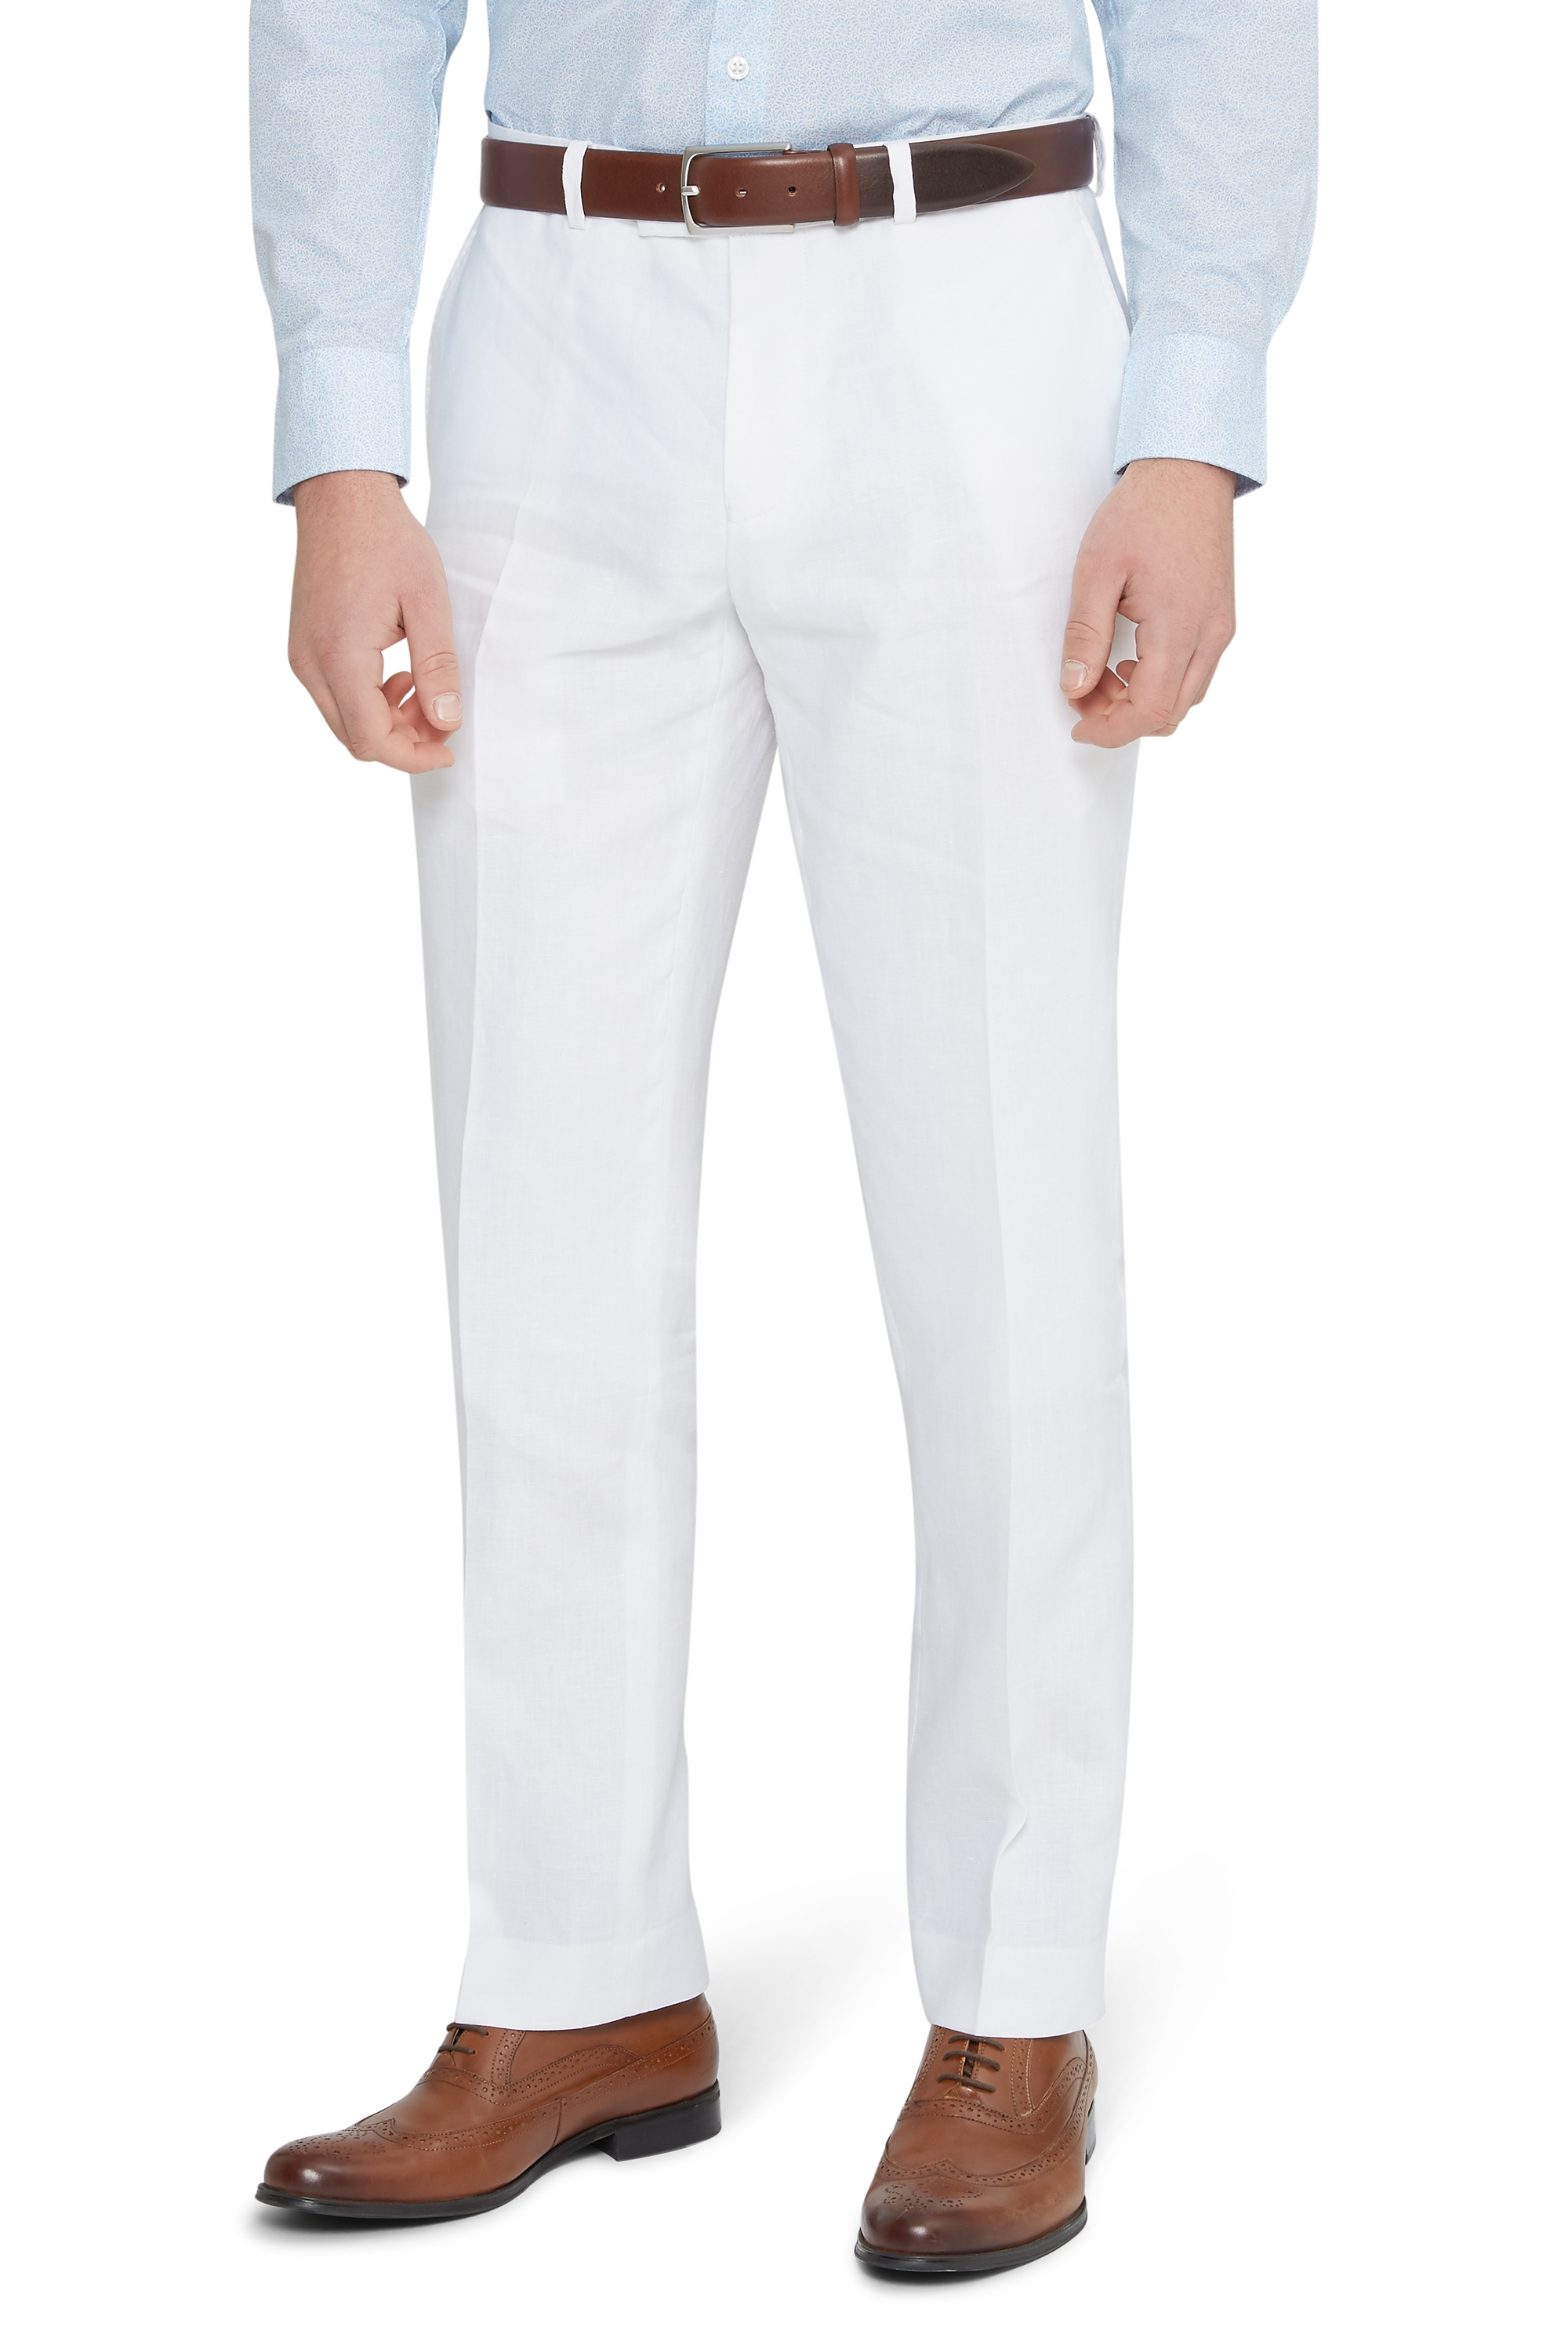 Moss 1851 Mens White Suit Trousers Tailored Fit Linen Formal Pants ...